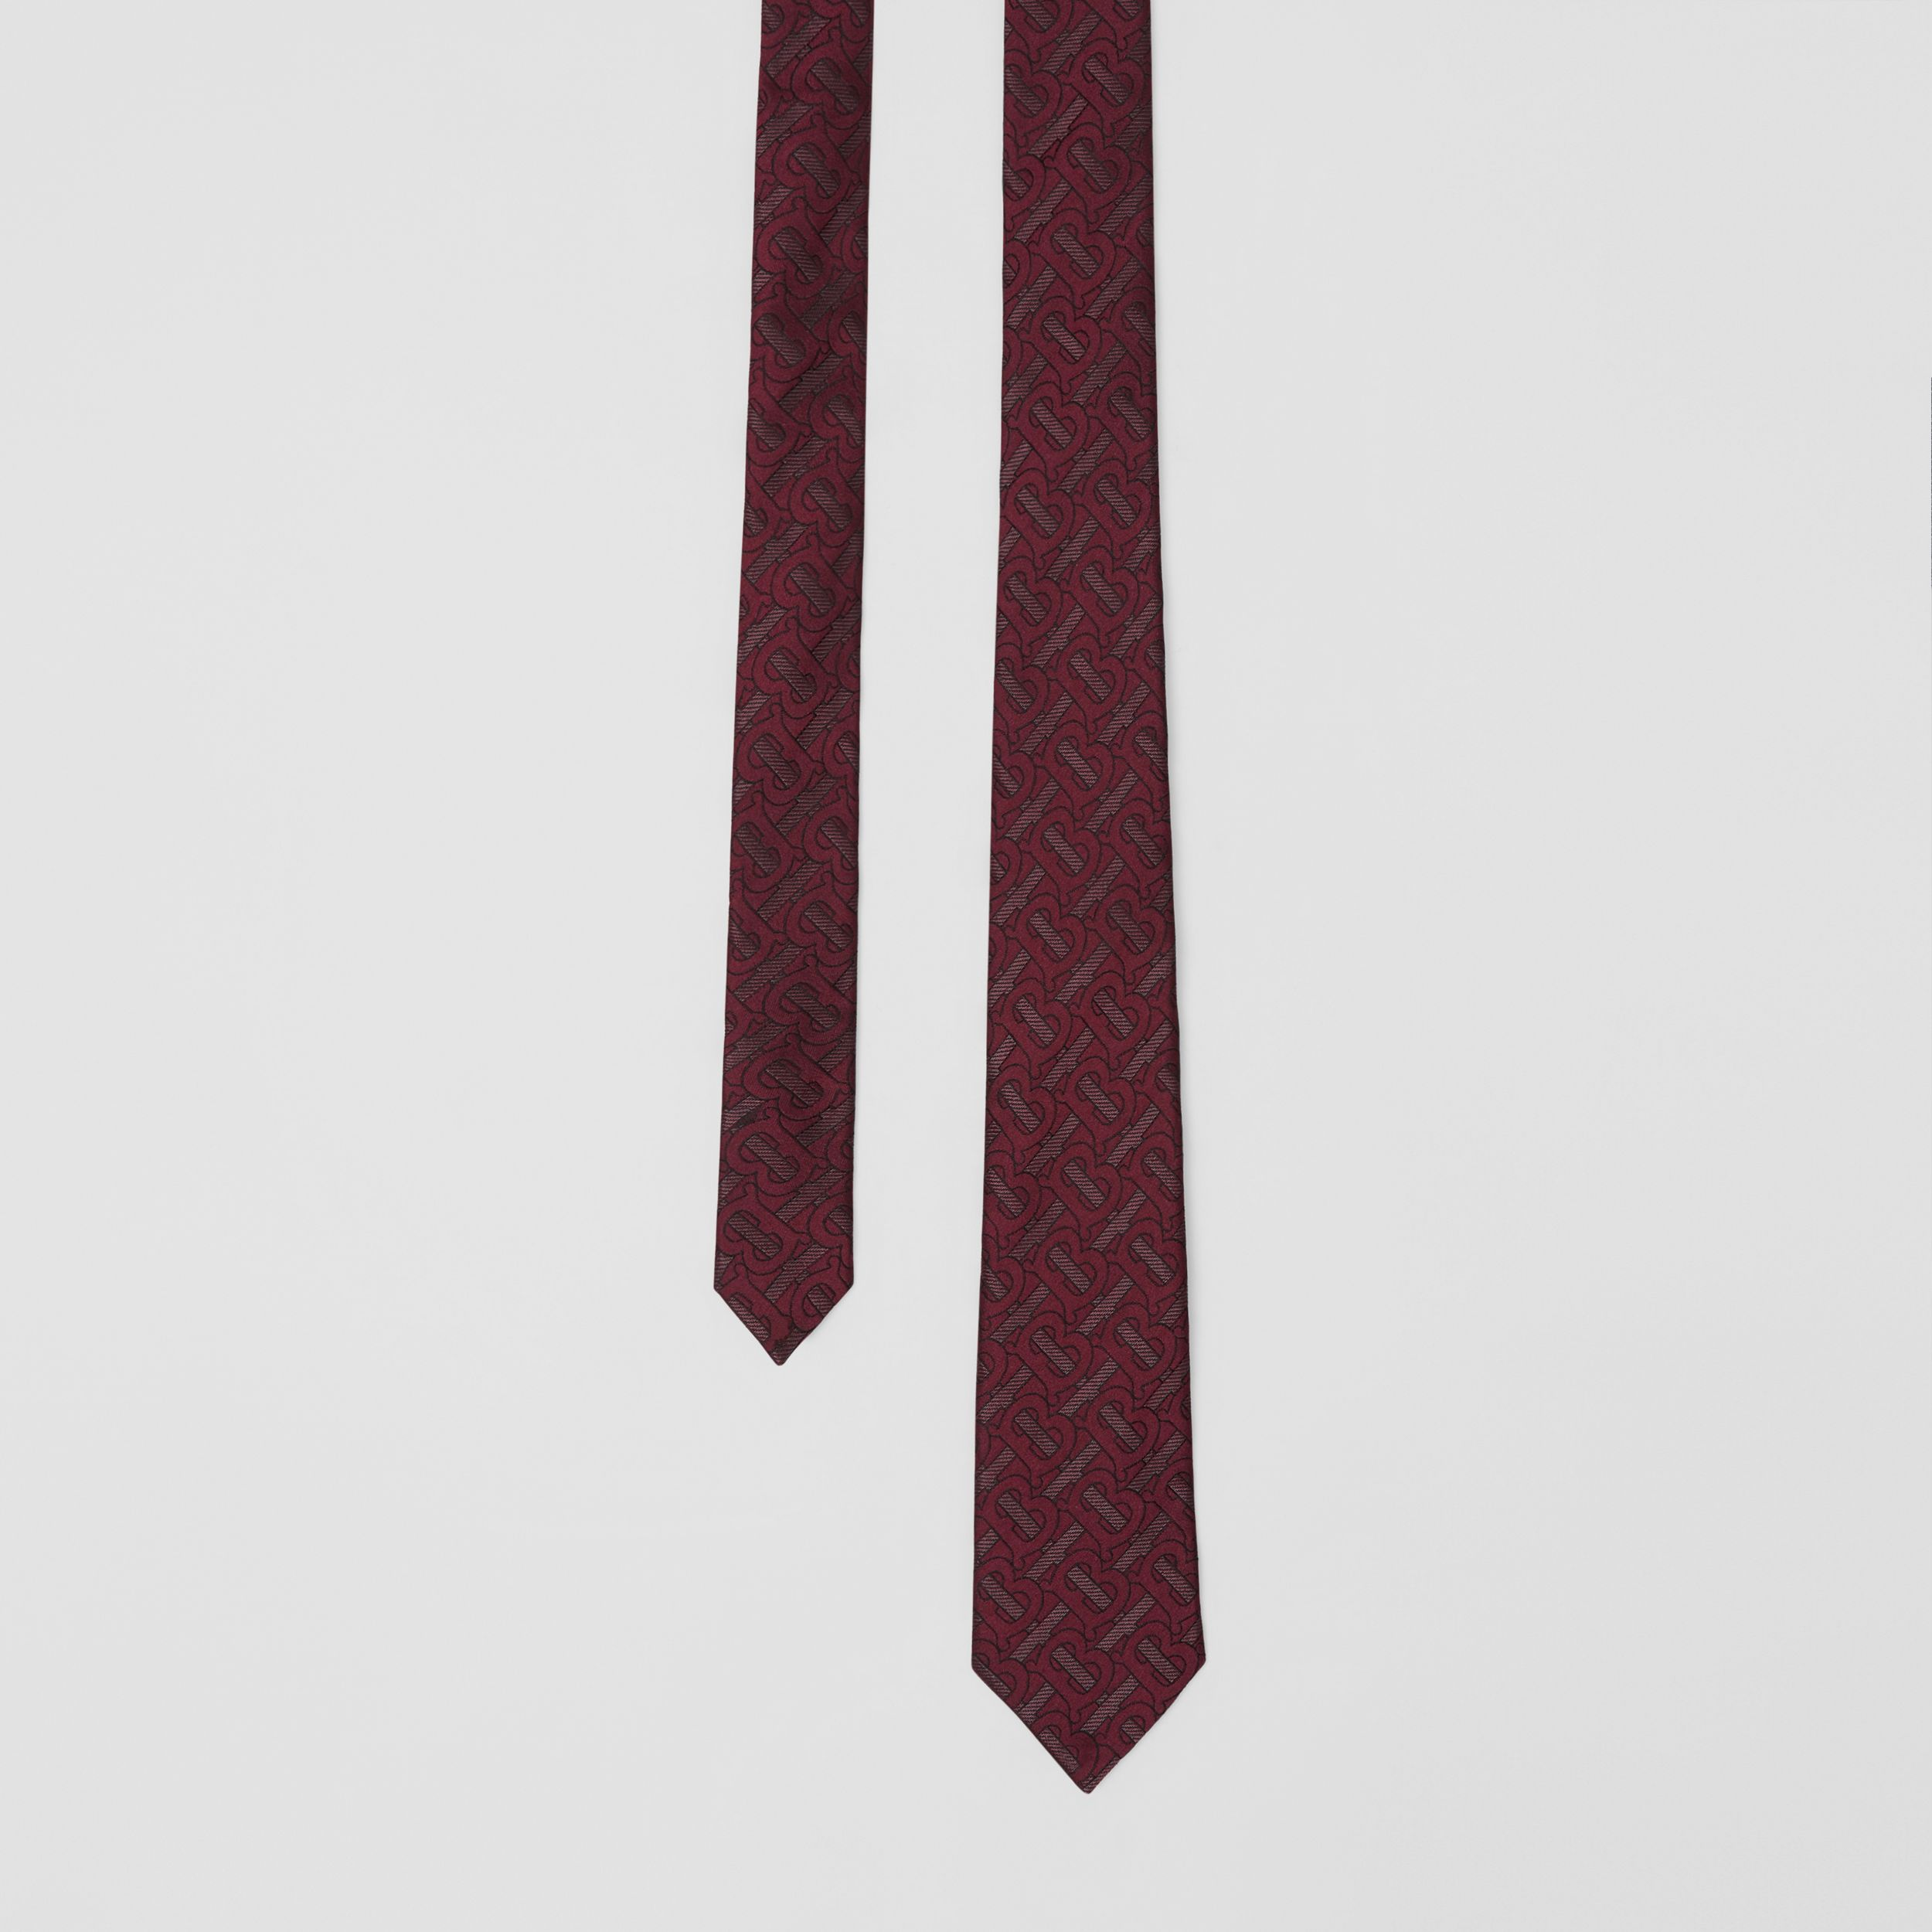 Classic Cut Monogram Silk Blend Jacquard Tie in Burgundy - Men | Burberry - 1